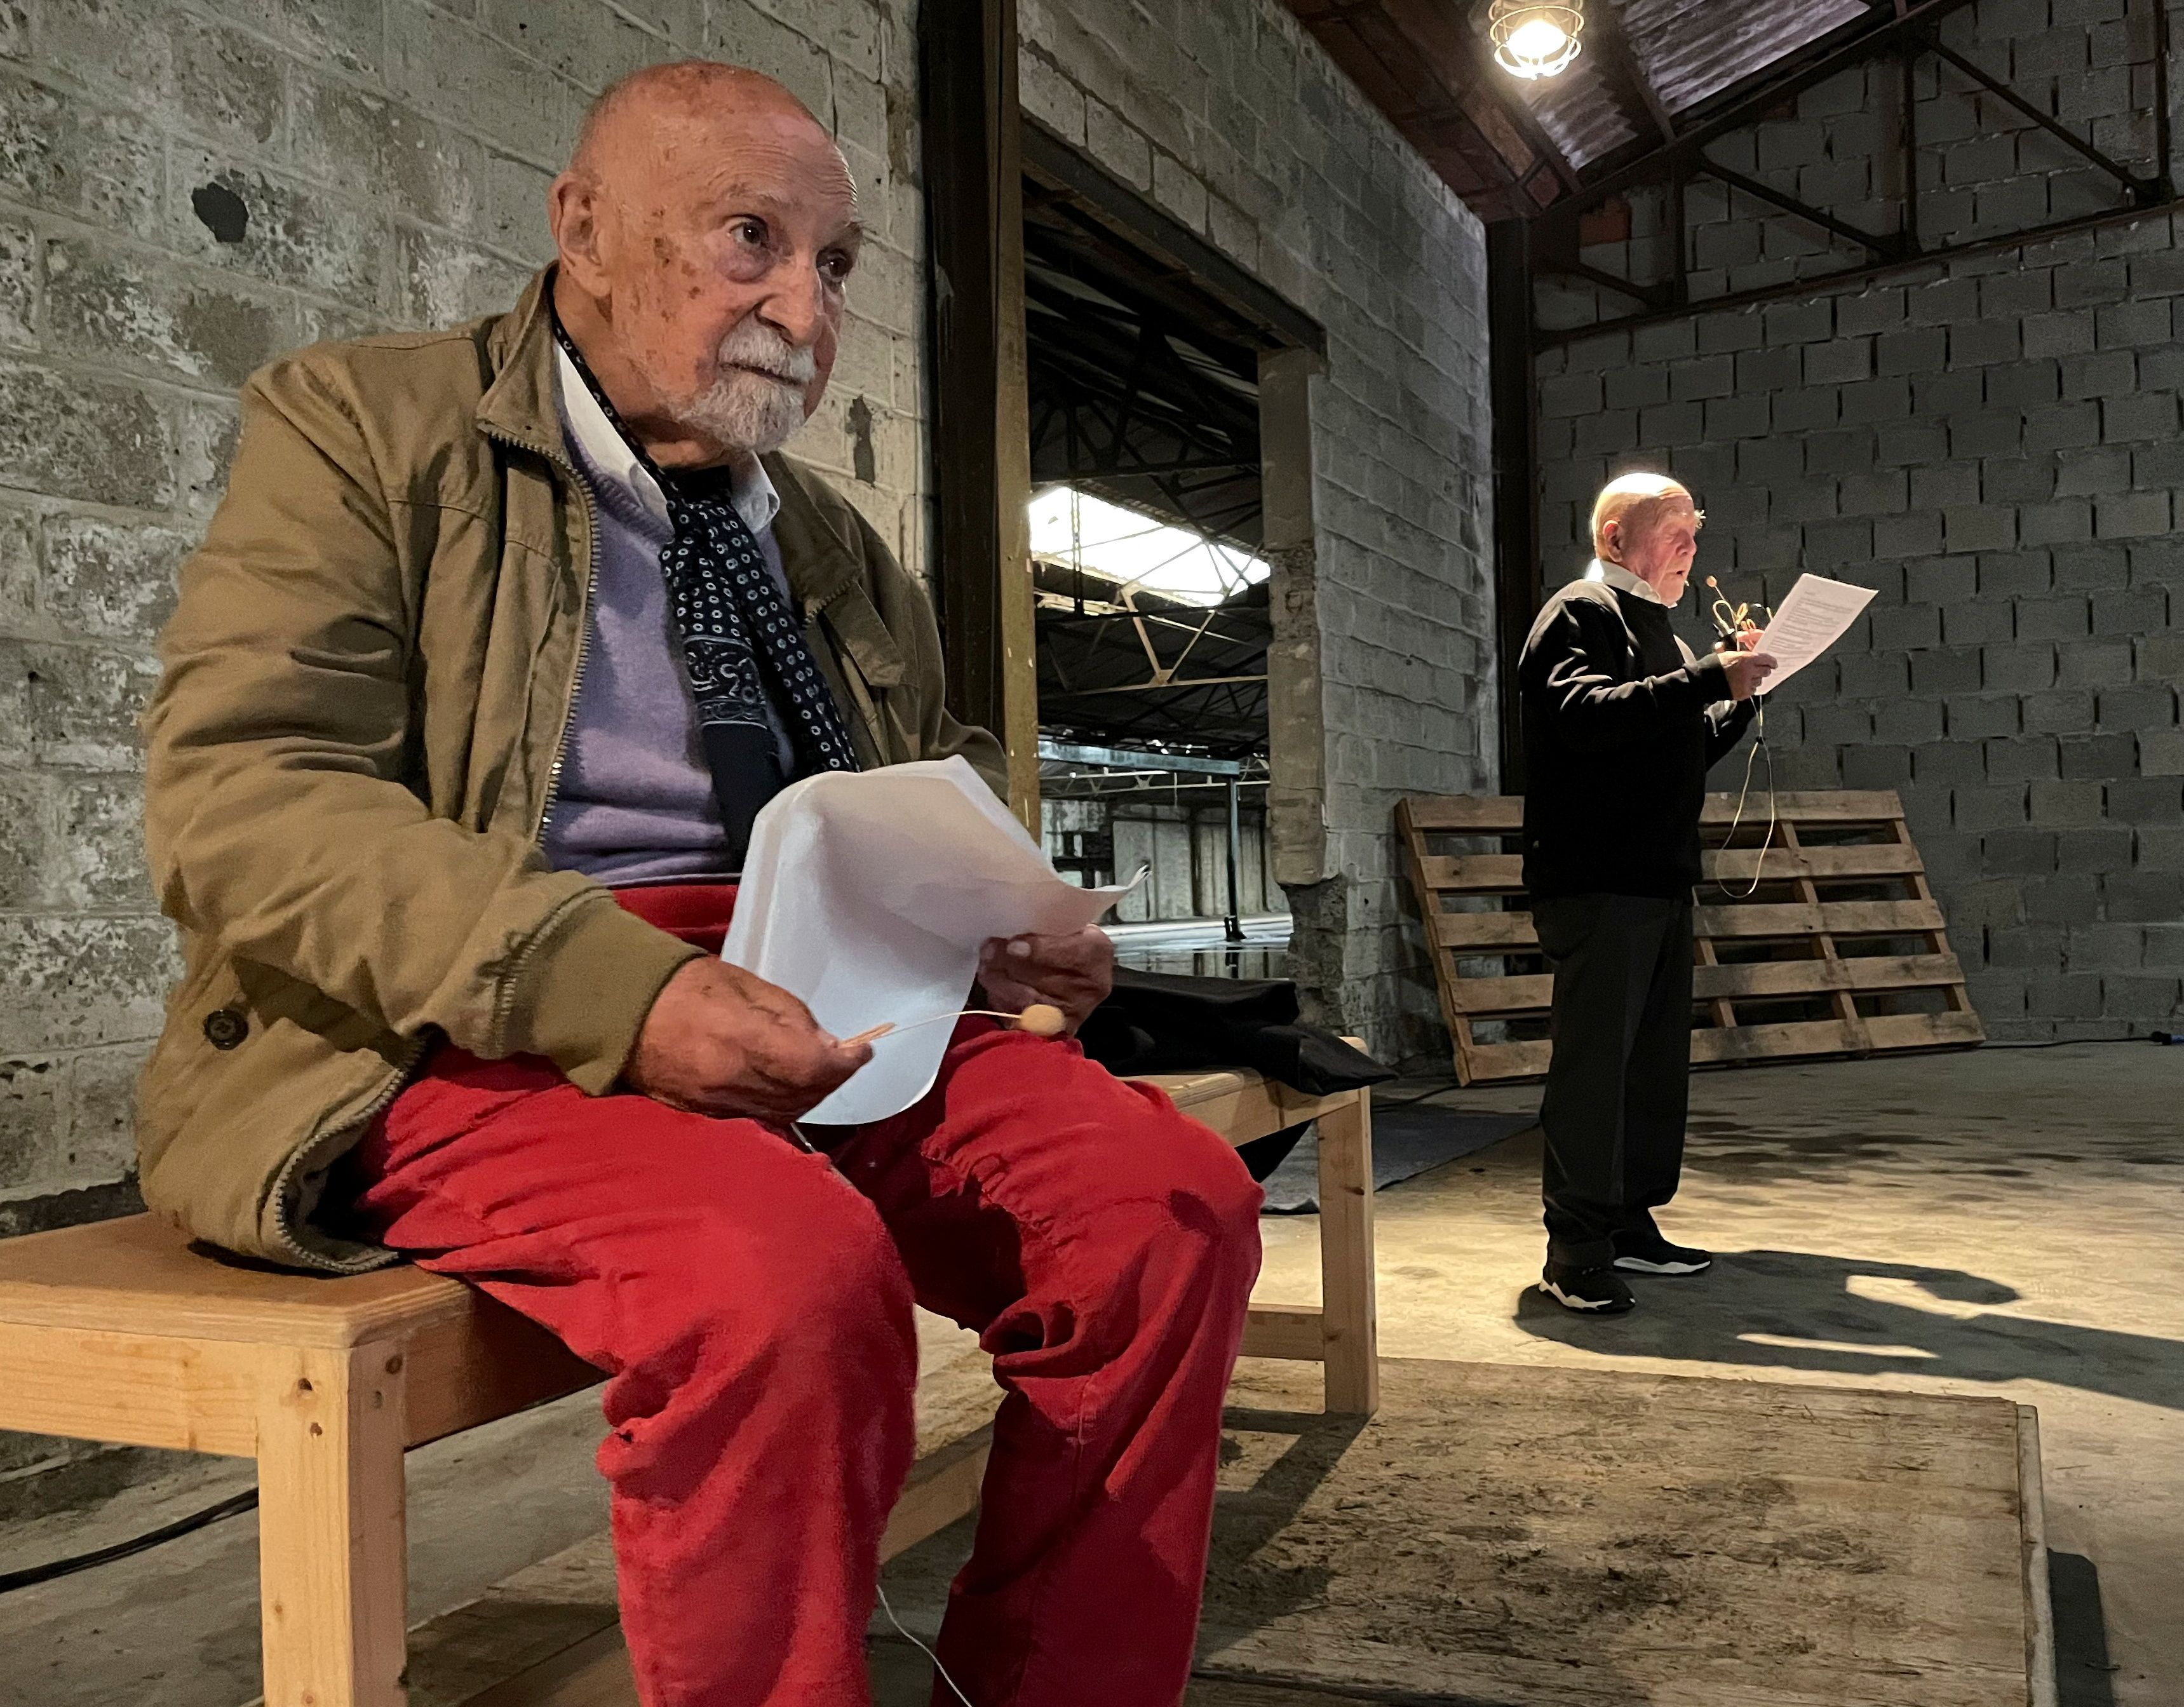 Belgian Holocaust survivor acts out his story on stage to mark ...